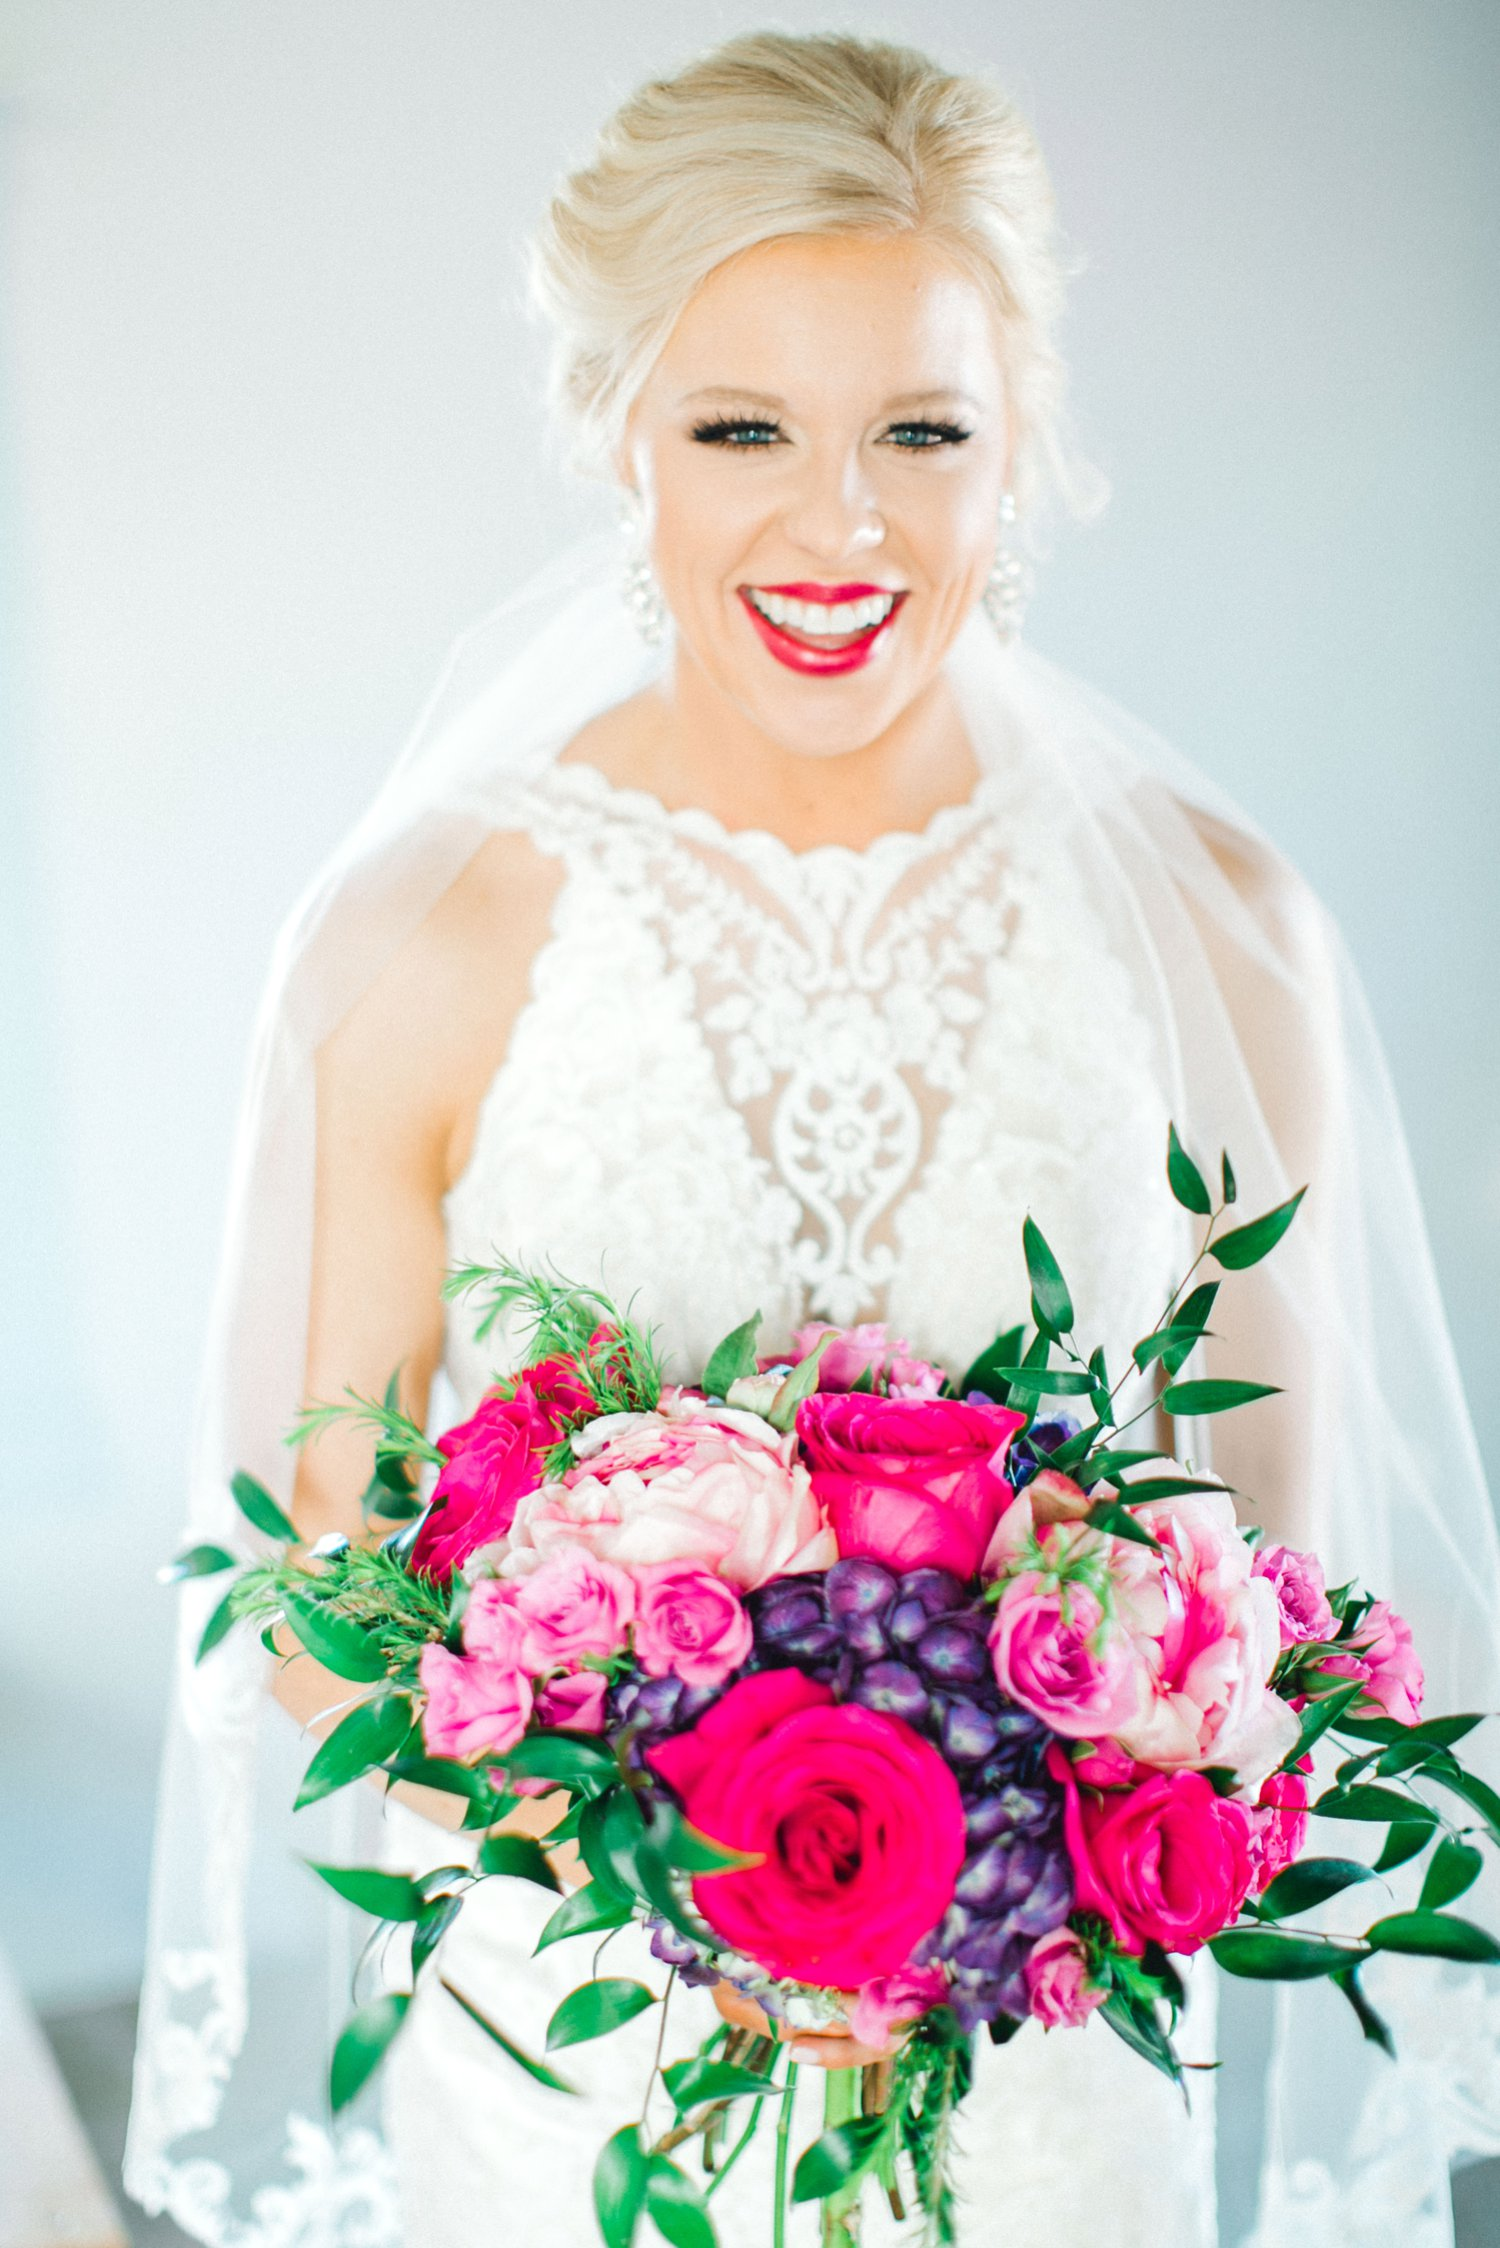 Jenna-evans-bridals-balmorhea-texas-fort-davis-wedding-photographer-lubbock-photographer__0032.jpg